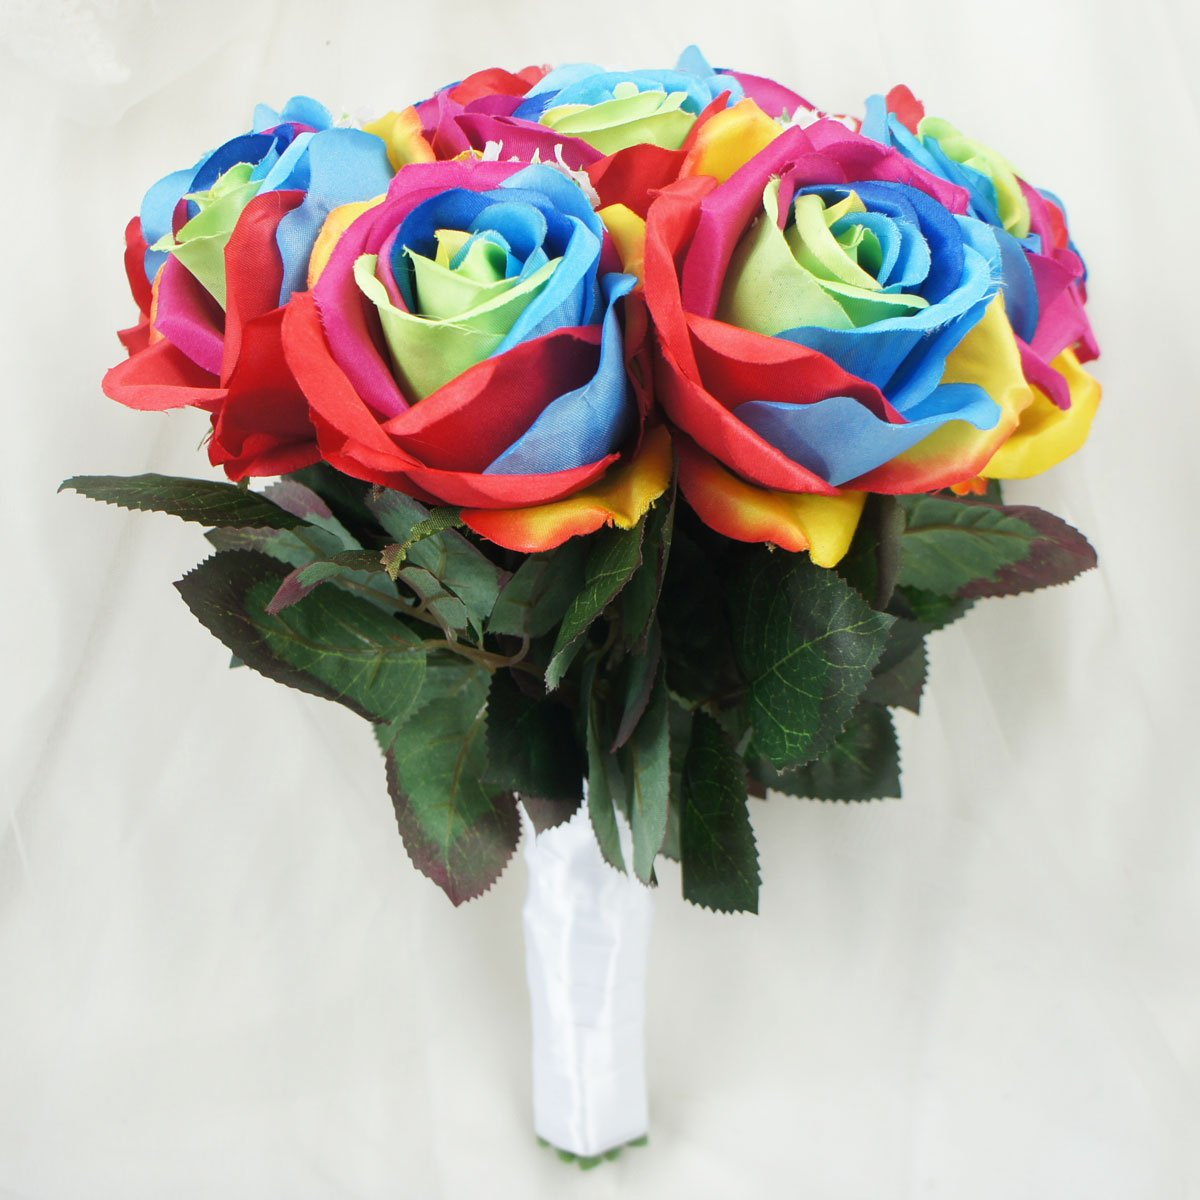 Amazon.com: Lily Garden Silk Rainbow Rose Flowers Bouquet Boutuniere ...